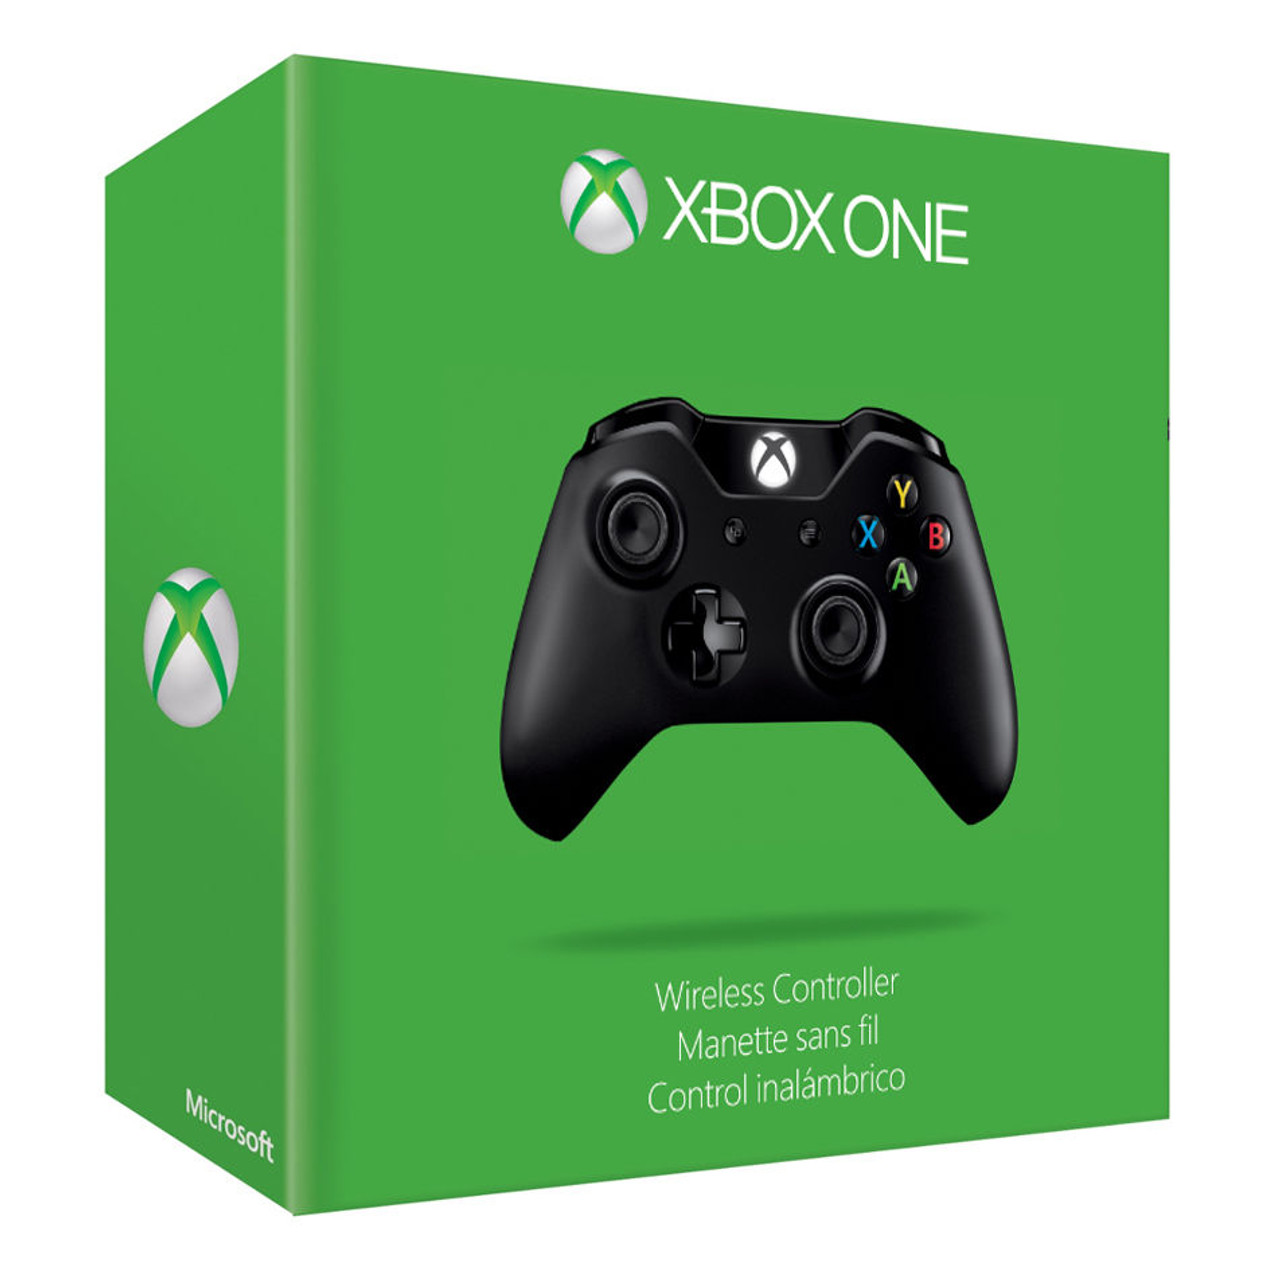 Official Microsoft Xbox ONE Wireless Controller (1537, Black)